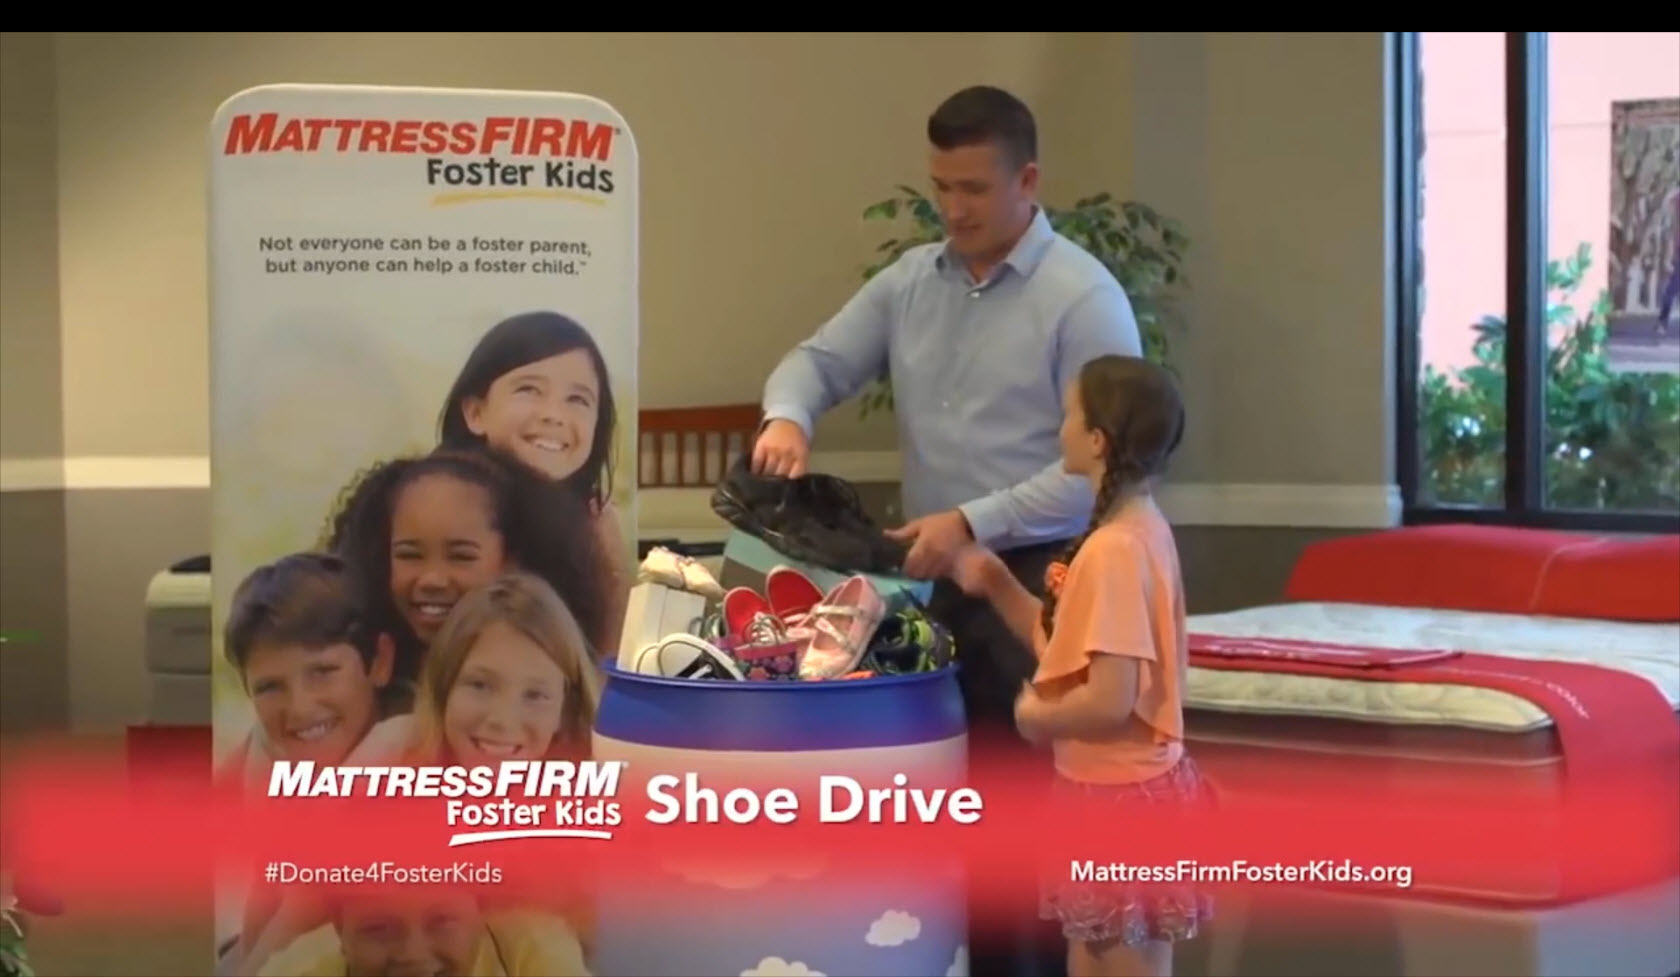 Mattress Firm Foster Kids Shoe Drive